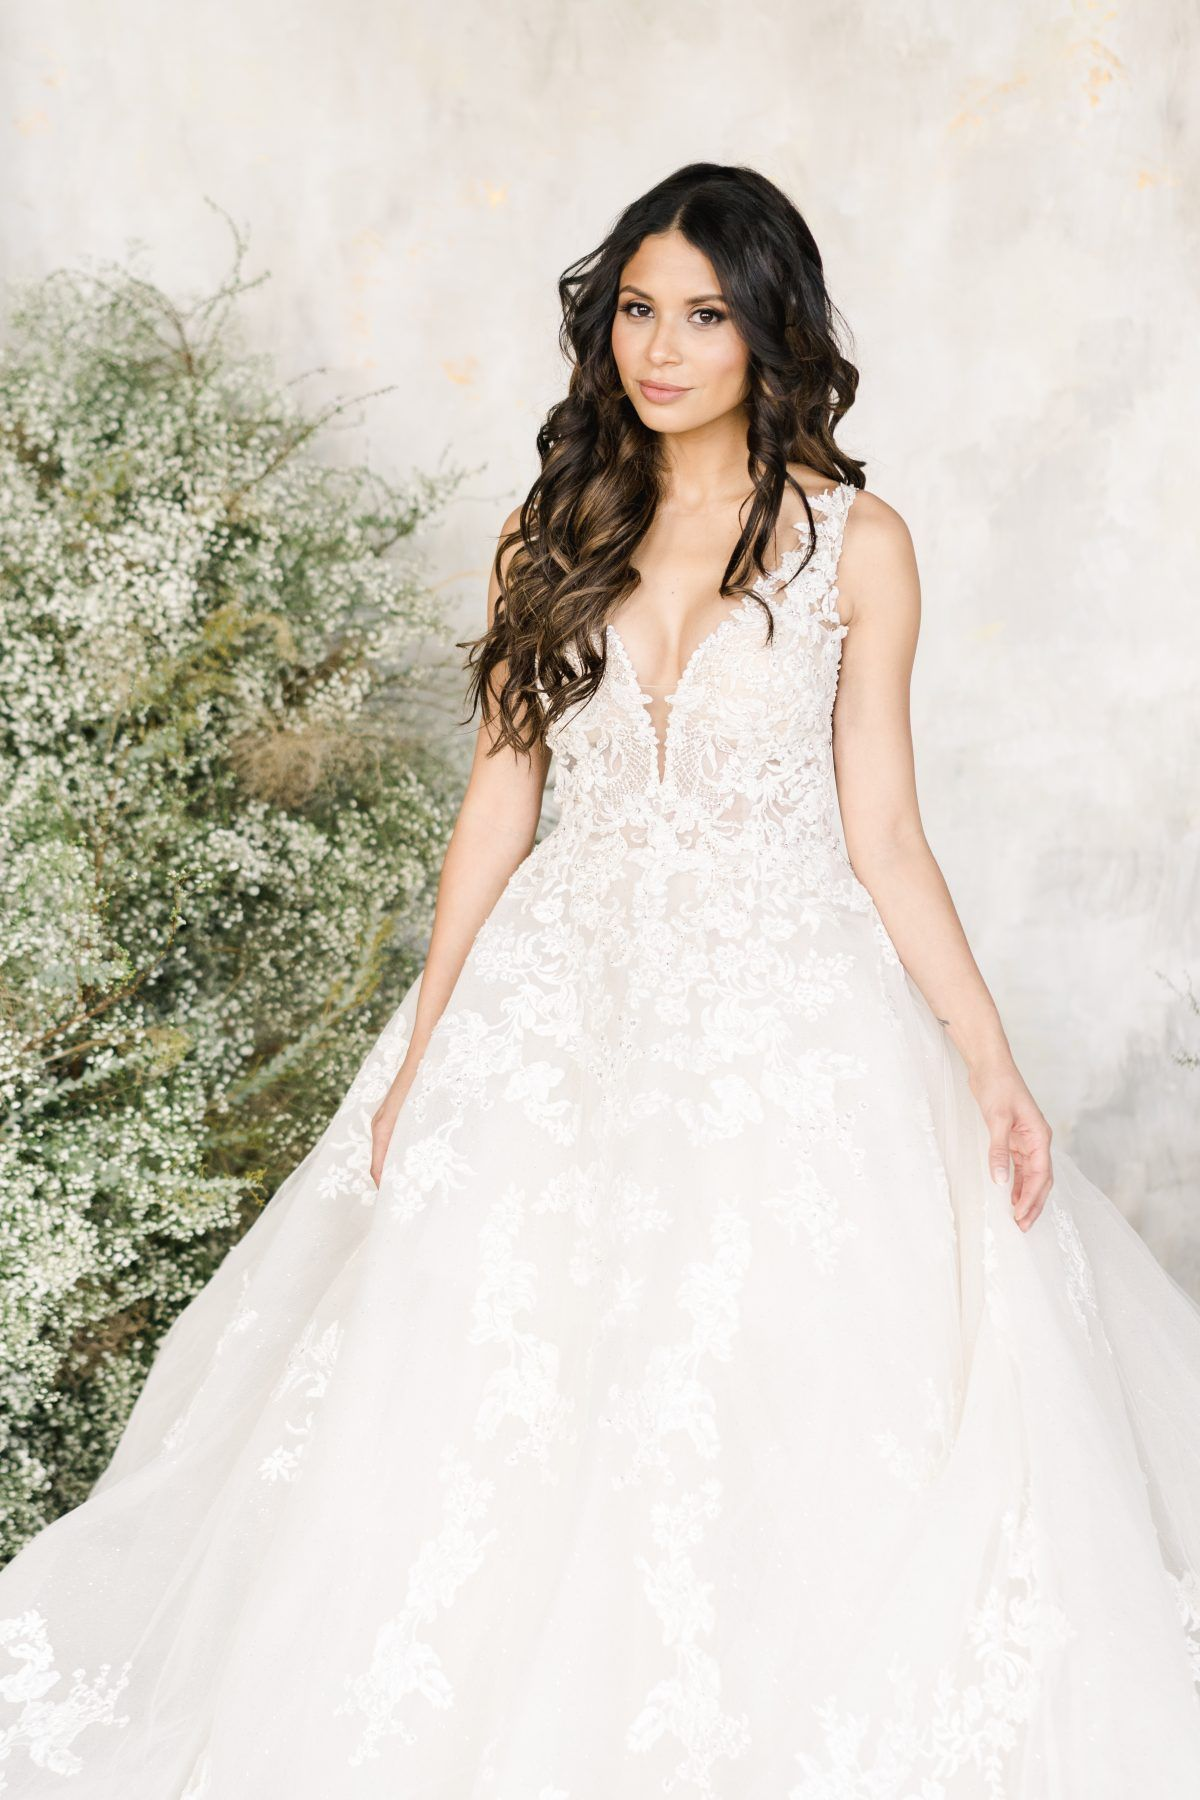 46+ V neck lace wedding gown info